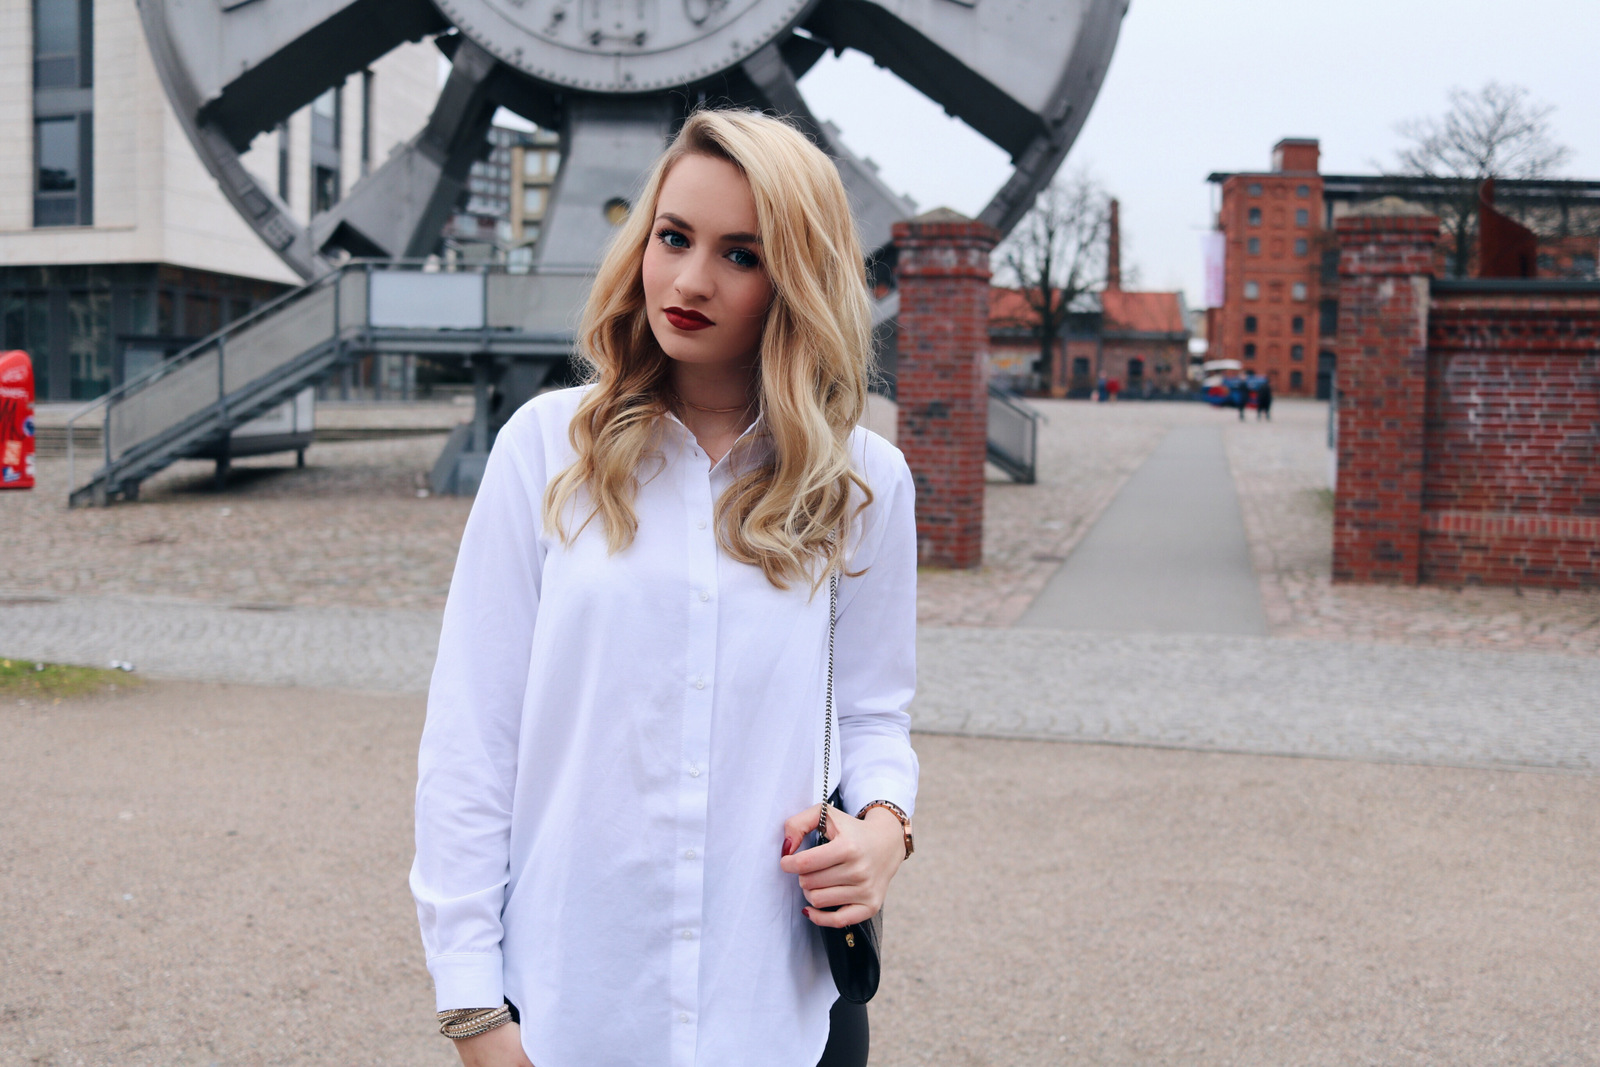 outfit 10 facts 1 look mrs brightside fashion travel lifestyle blog aus hamburg. Black Bedroom Furniture Sets. Home Design Ideas